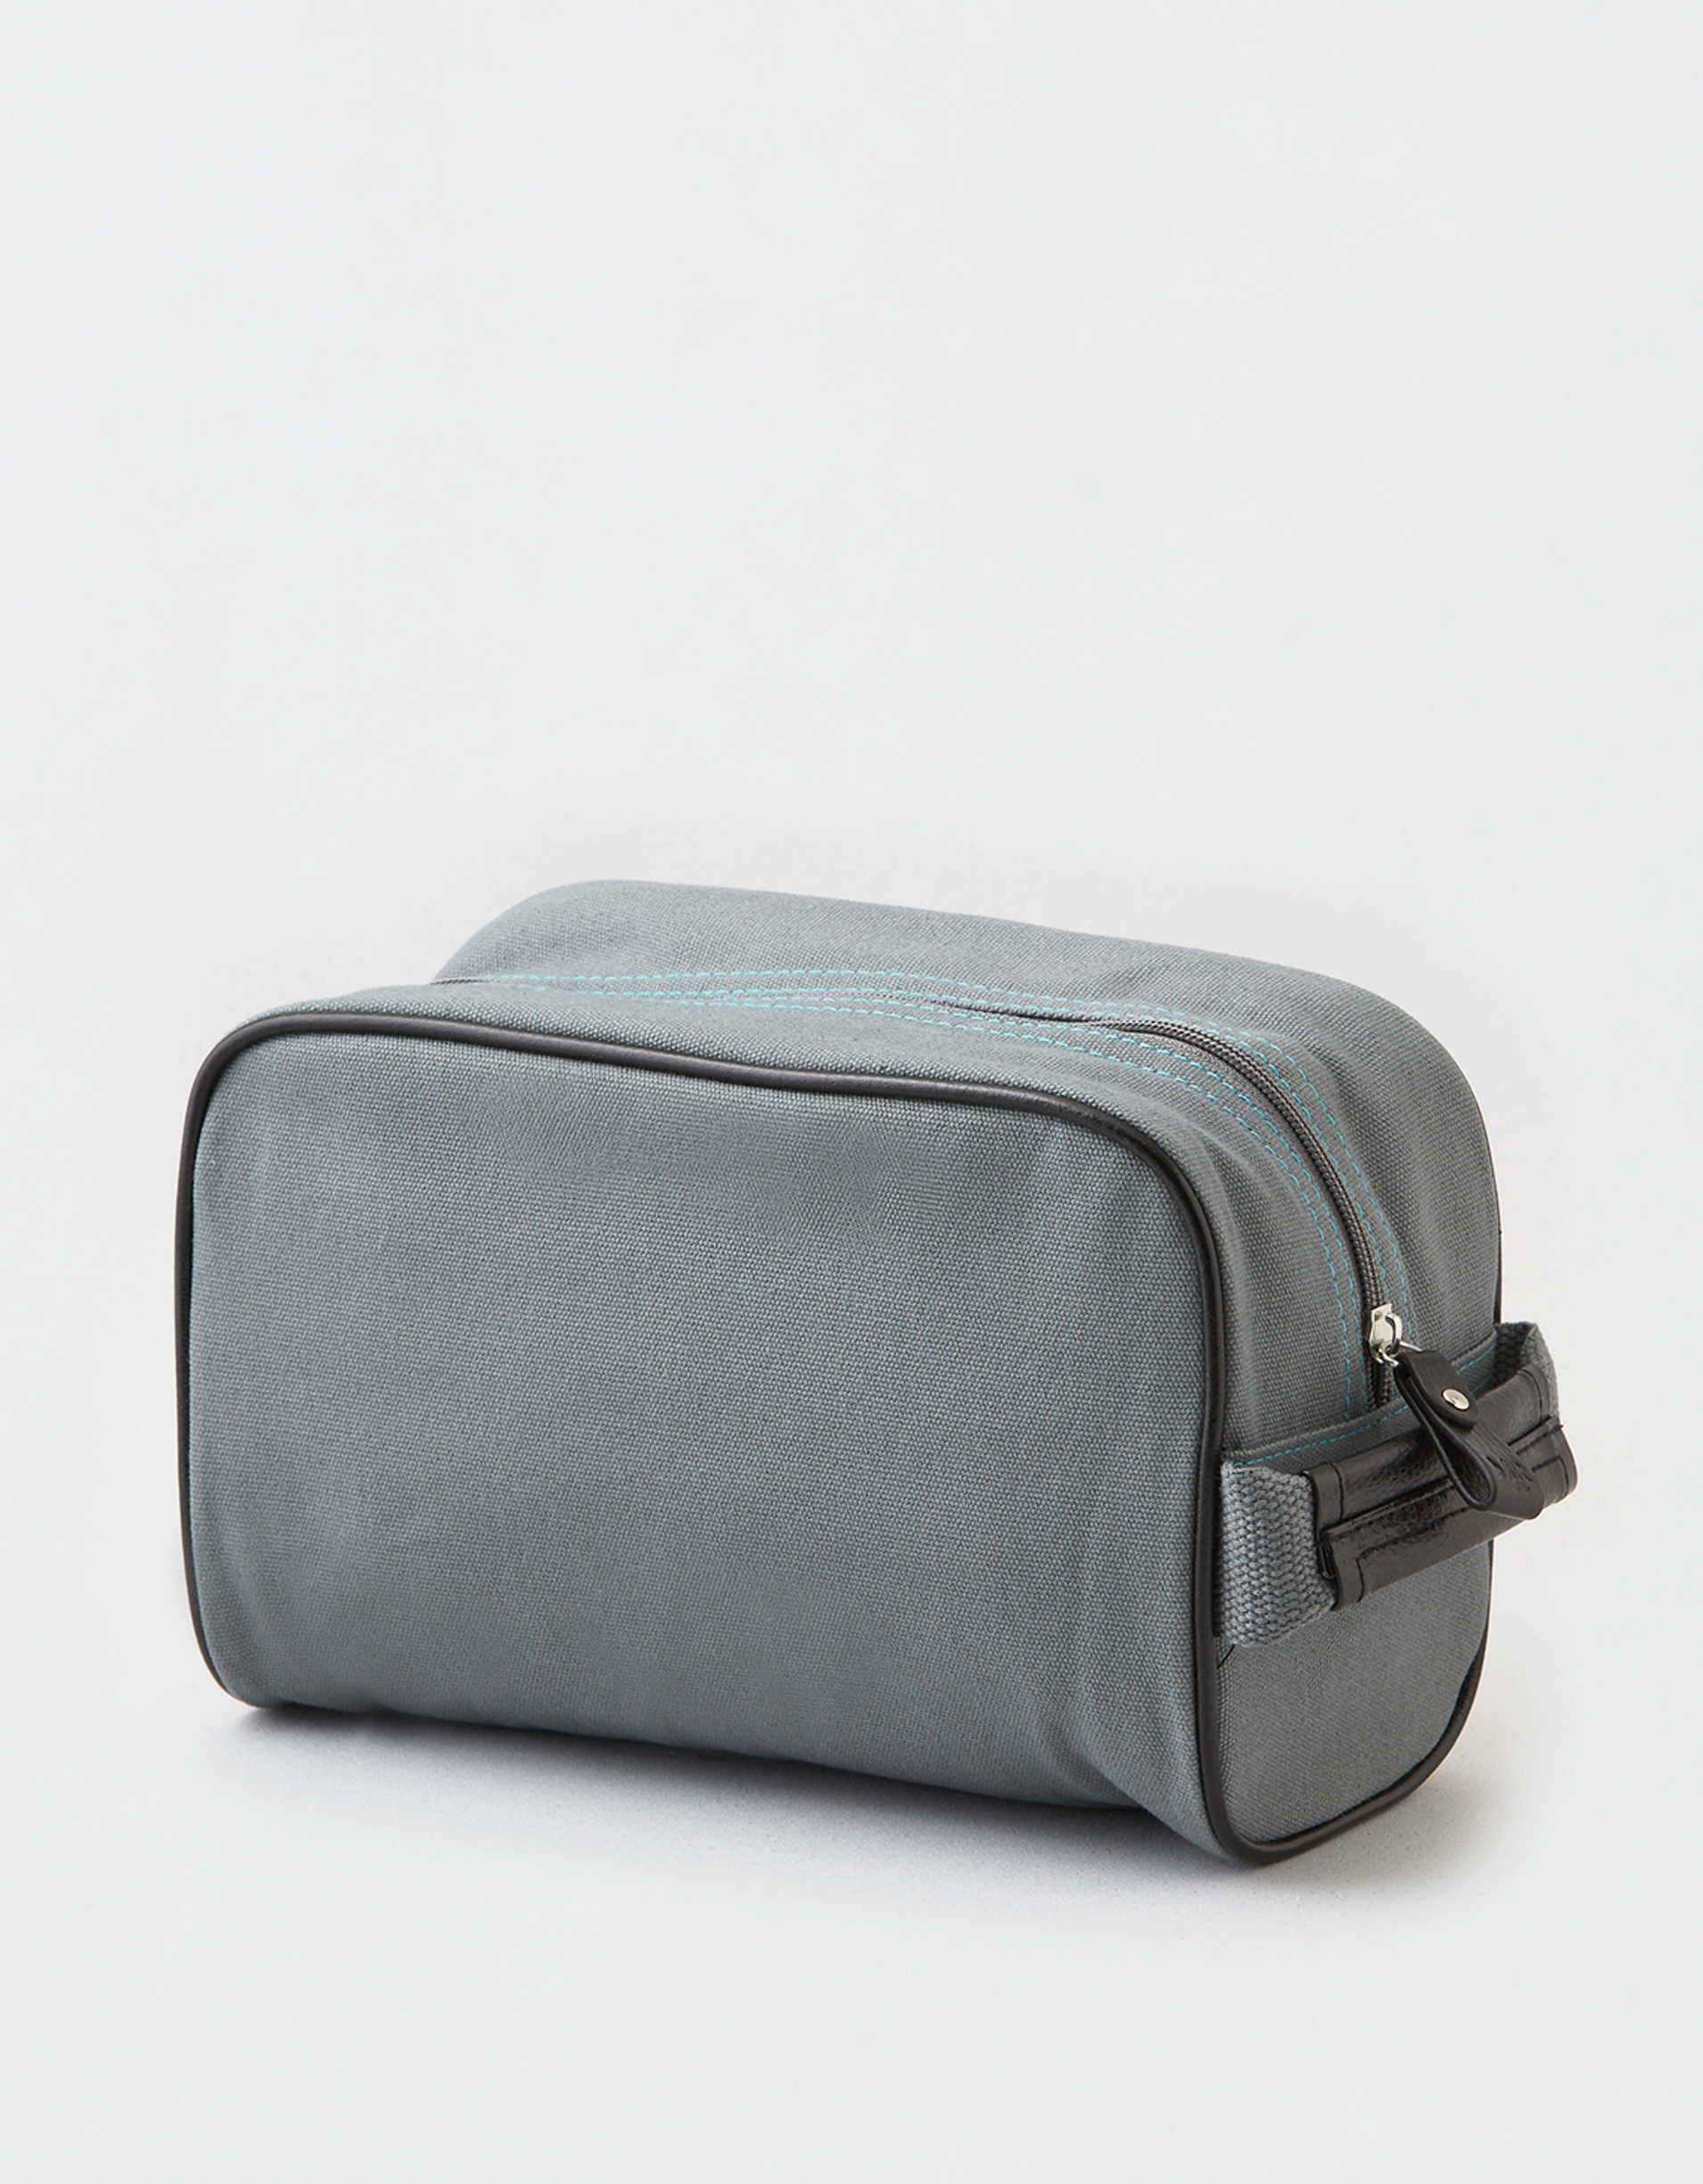 Mr. Manly Men's Toiletry Bag